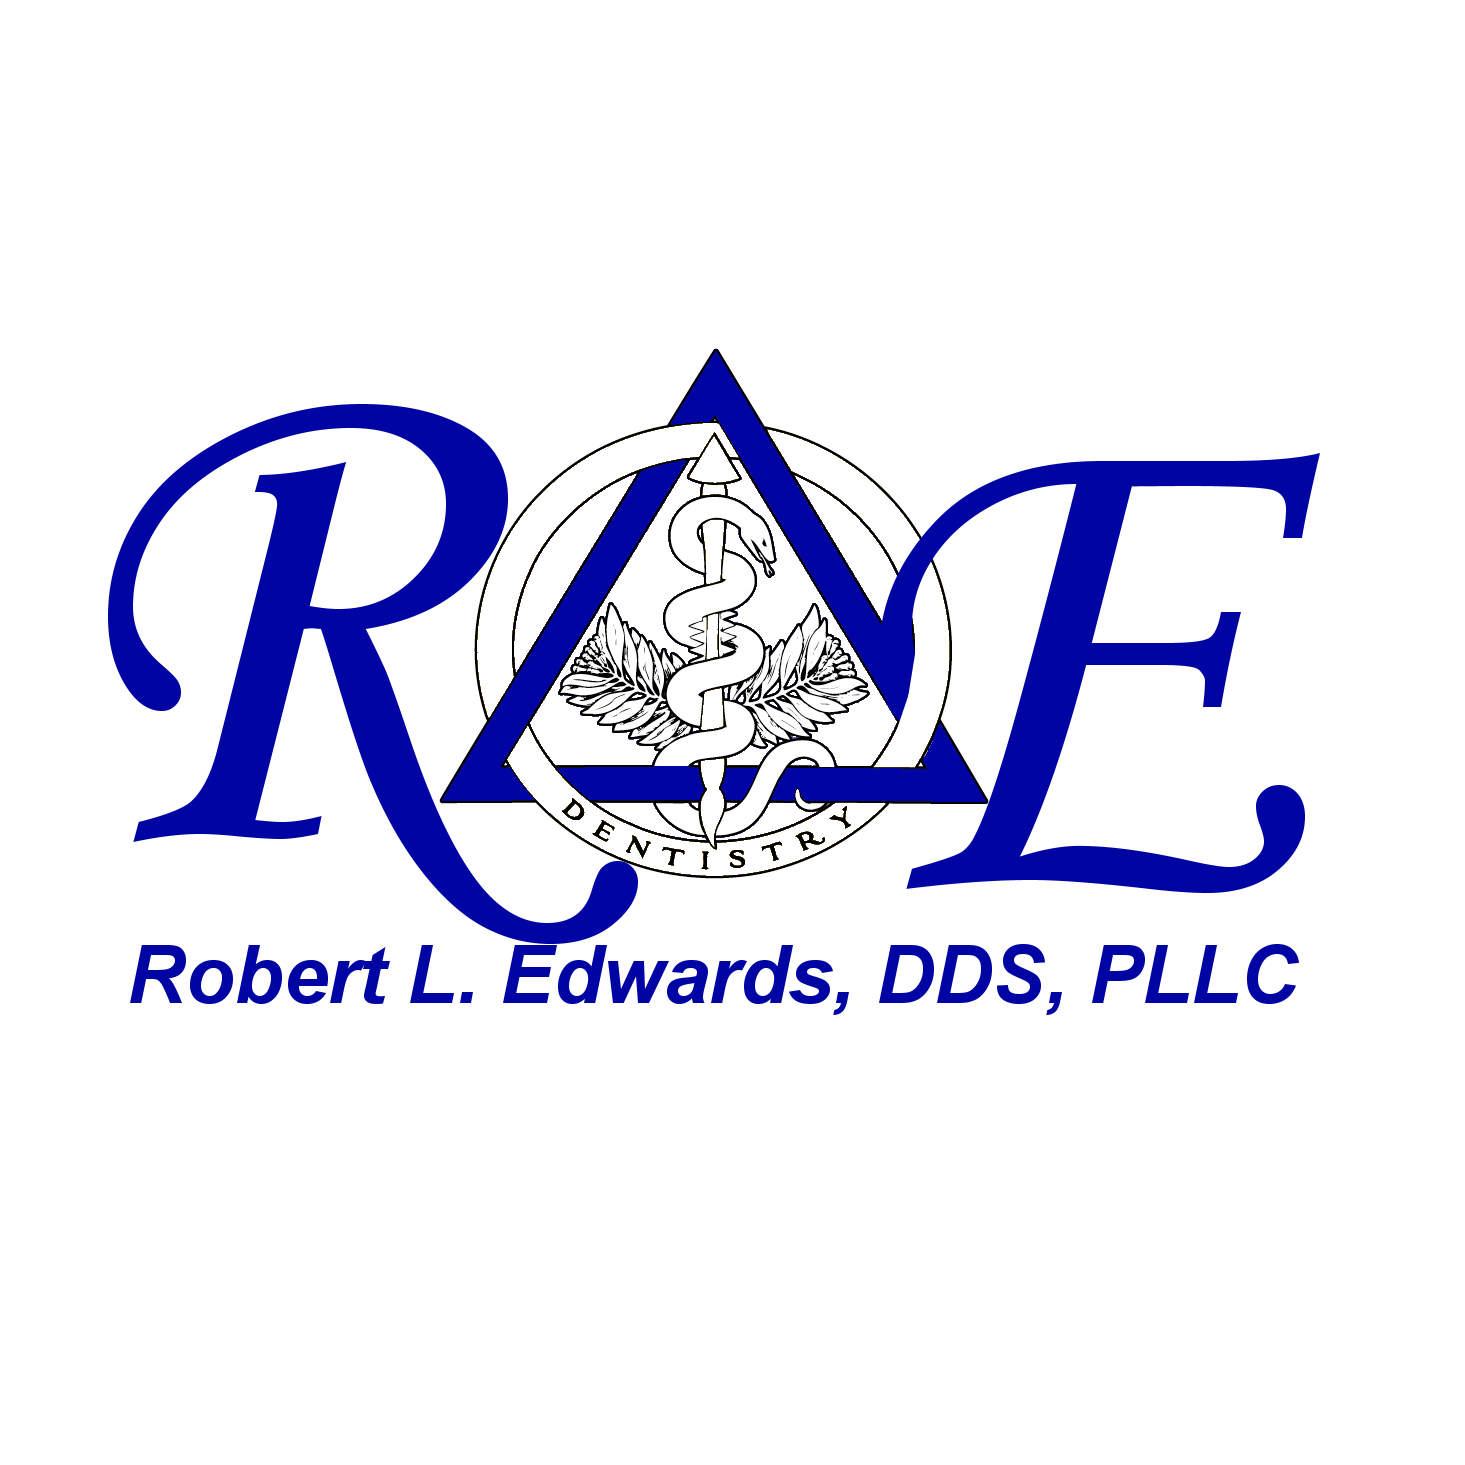 Robert Edwards, DDS